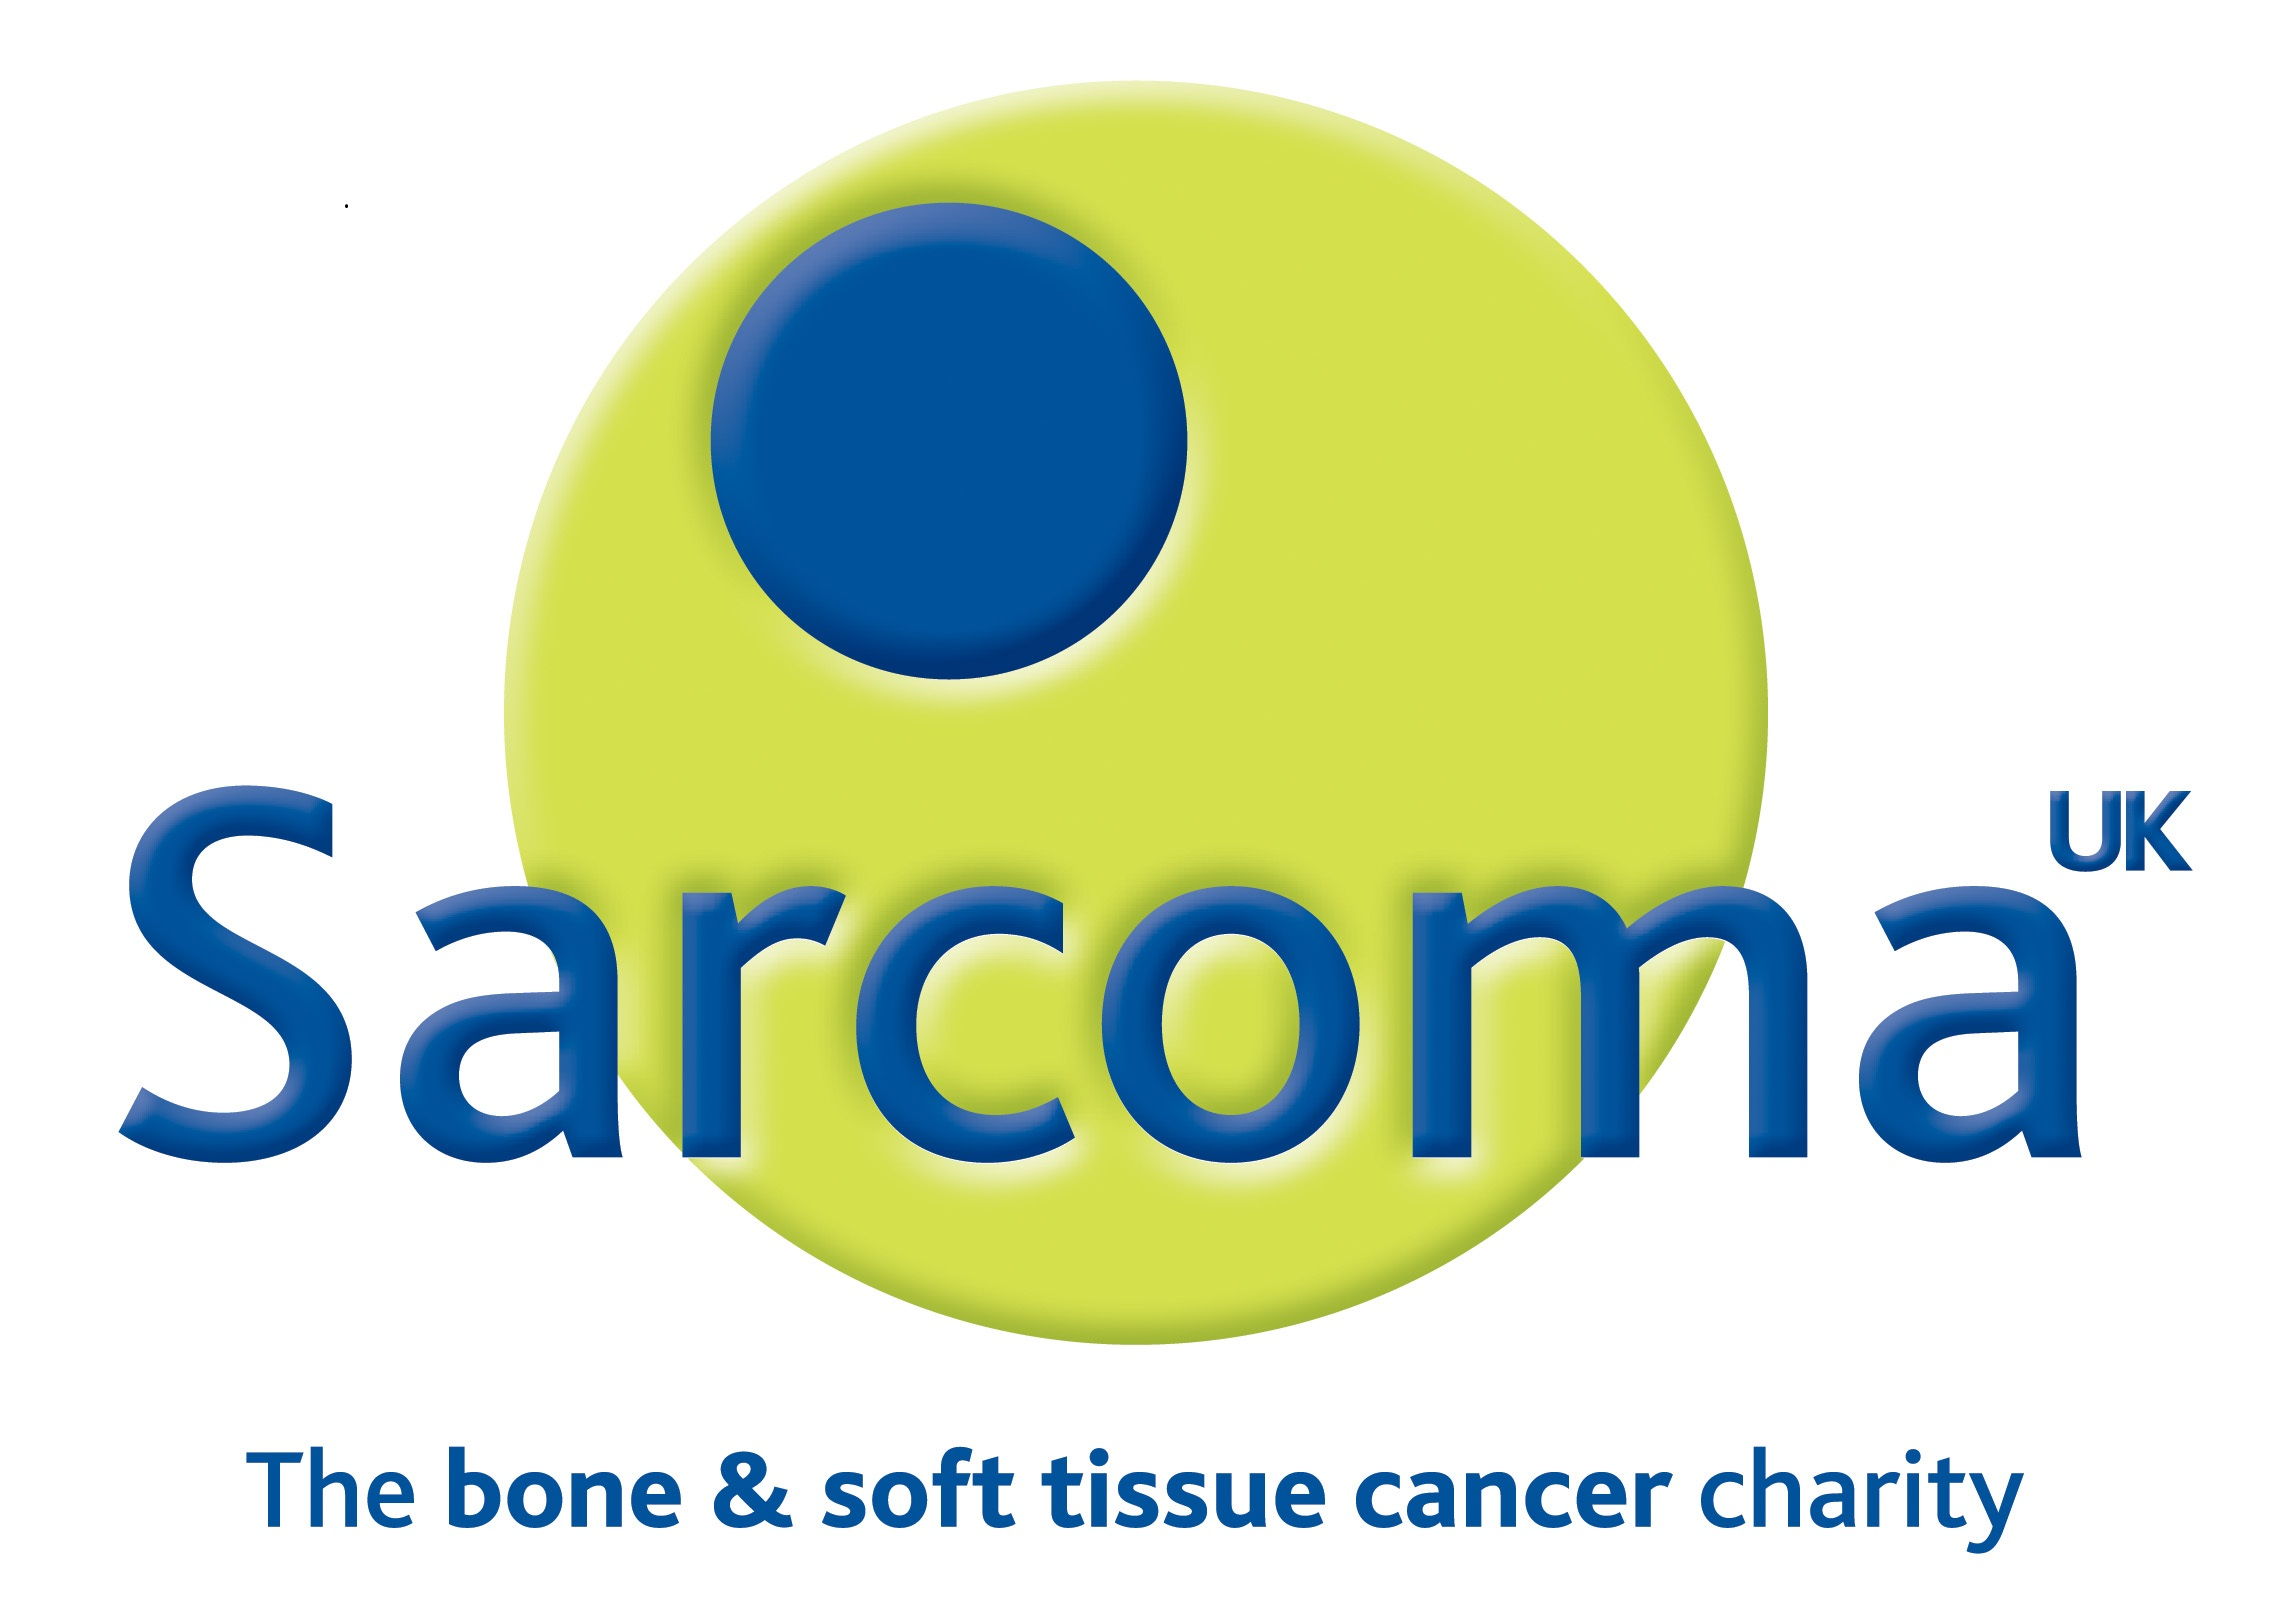 Sarcoma UK will be British Kebab Awards 2018 Charity Partner